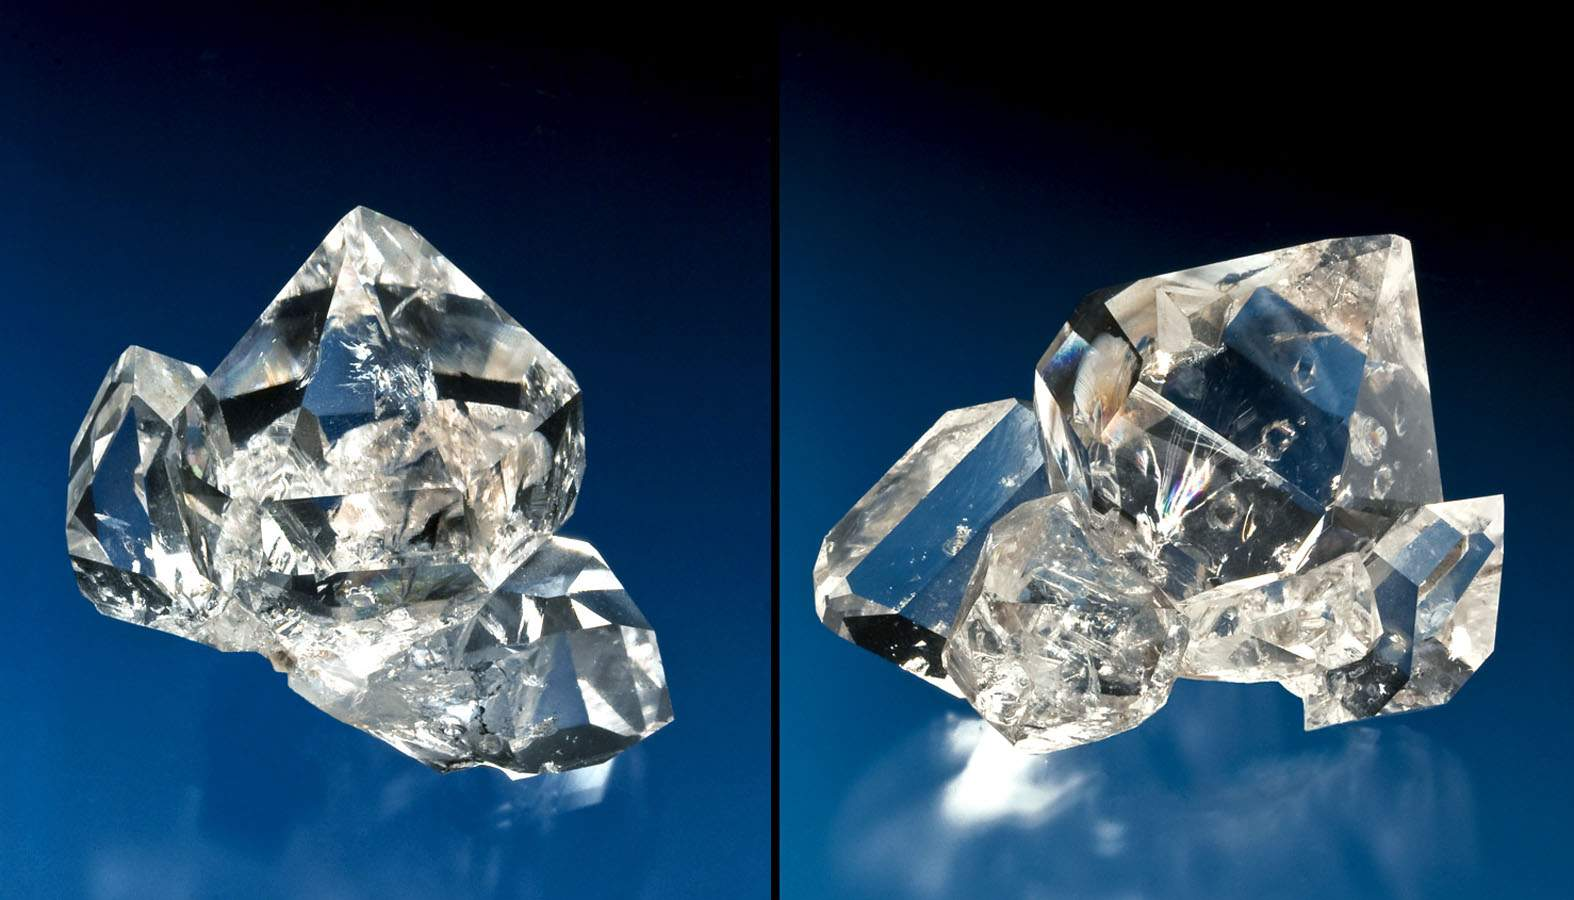 terminated quality extraa extra dt diamond quartz pictures pakistan discontinued represent clear double typical